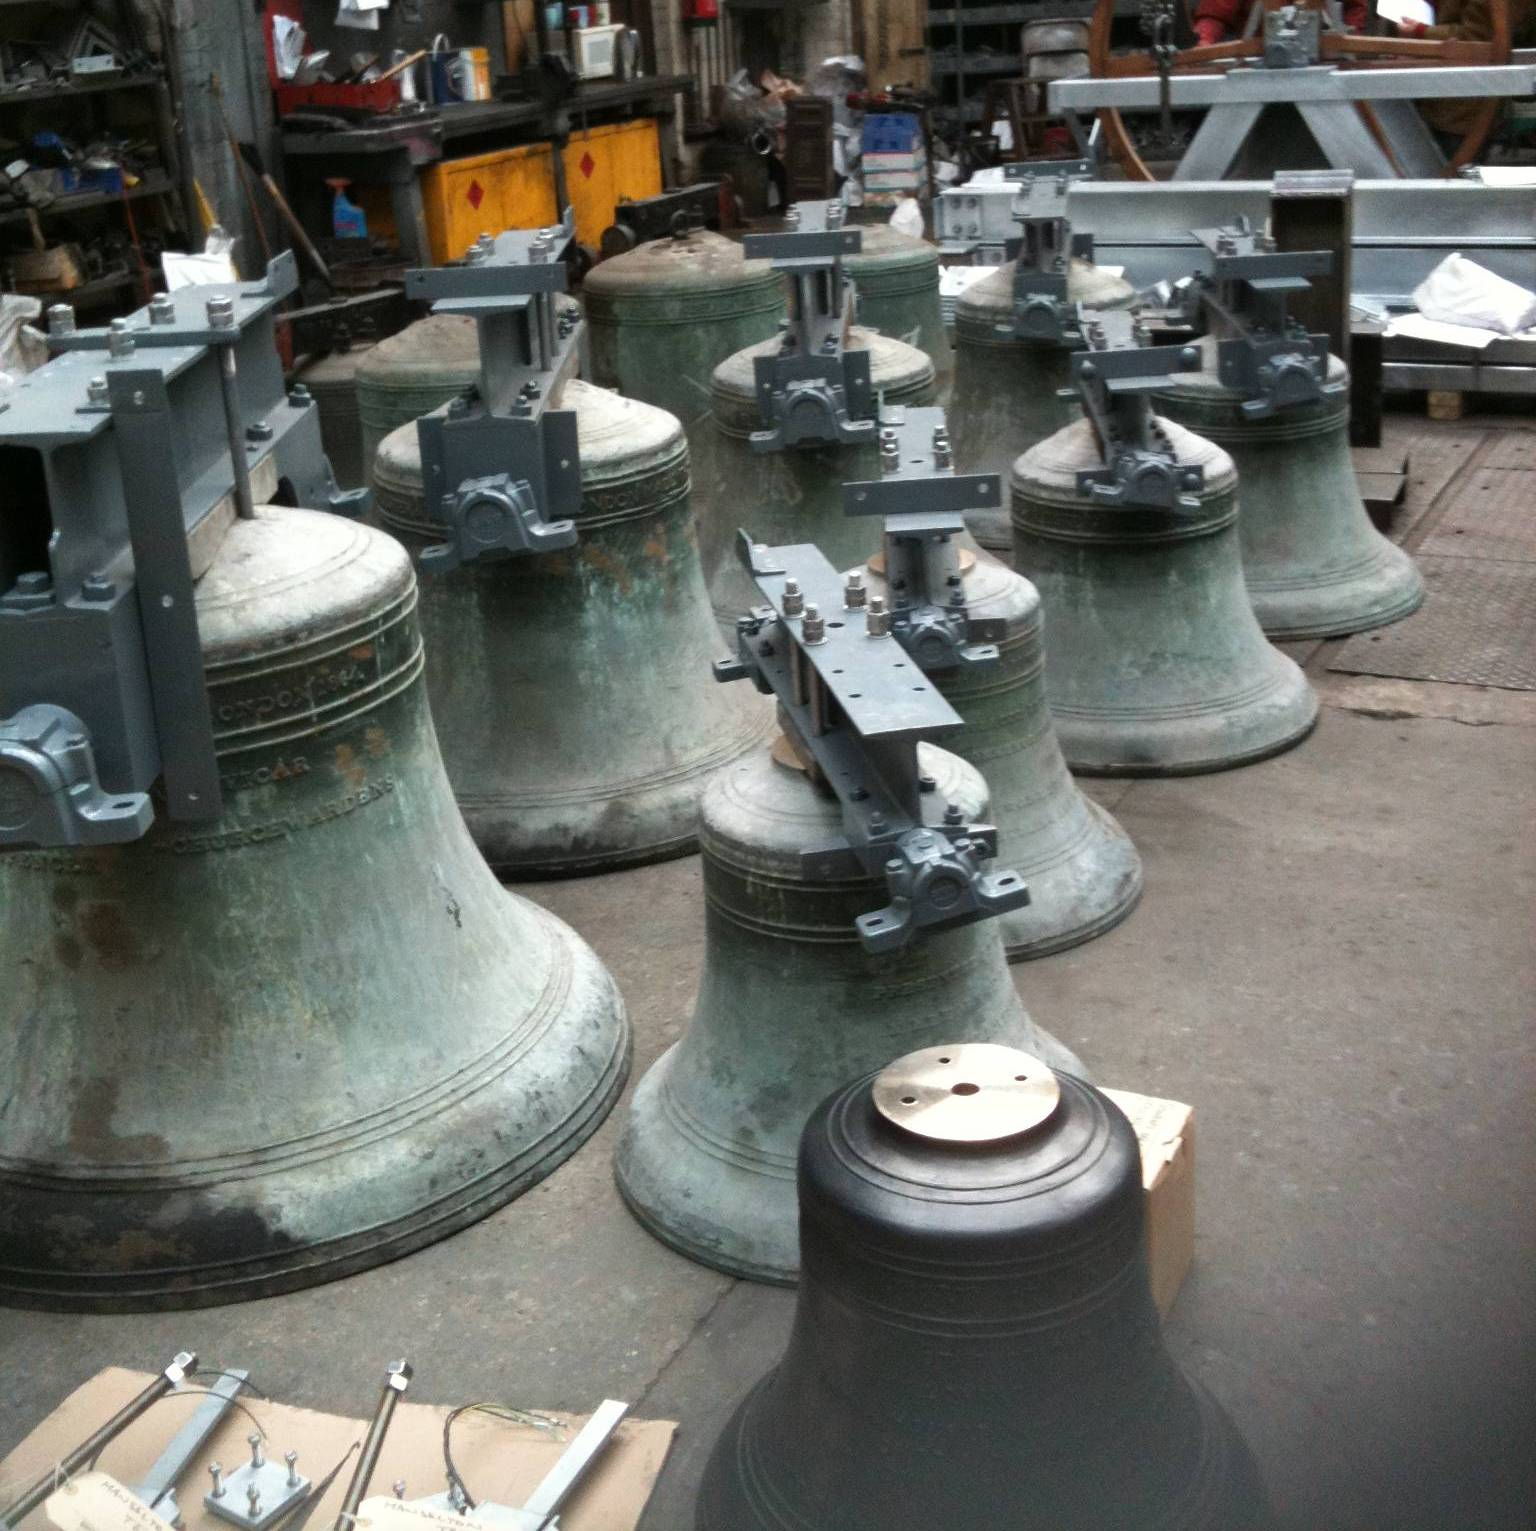 Bells in a workshop